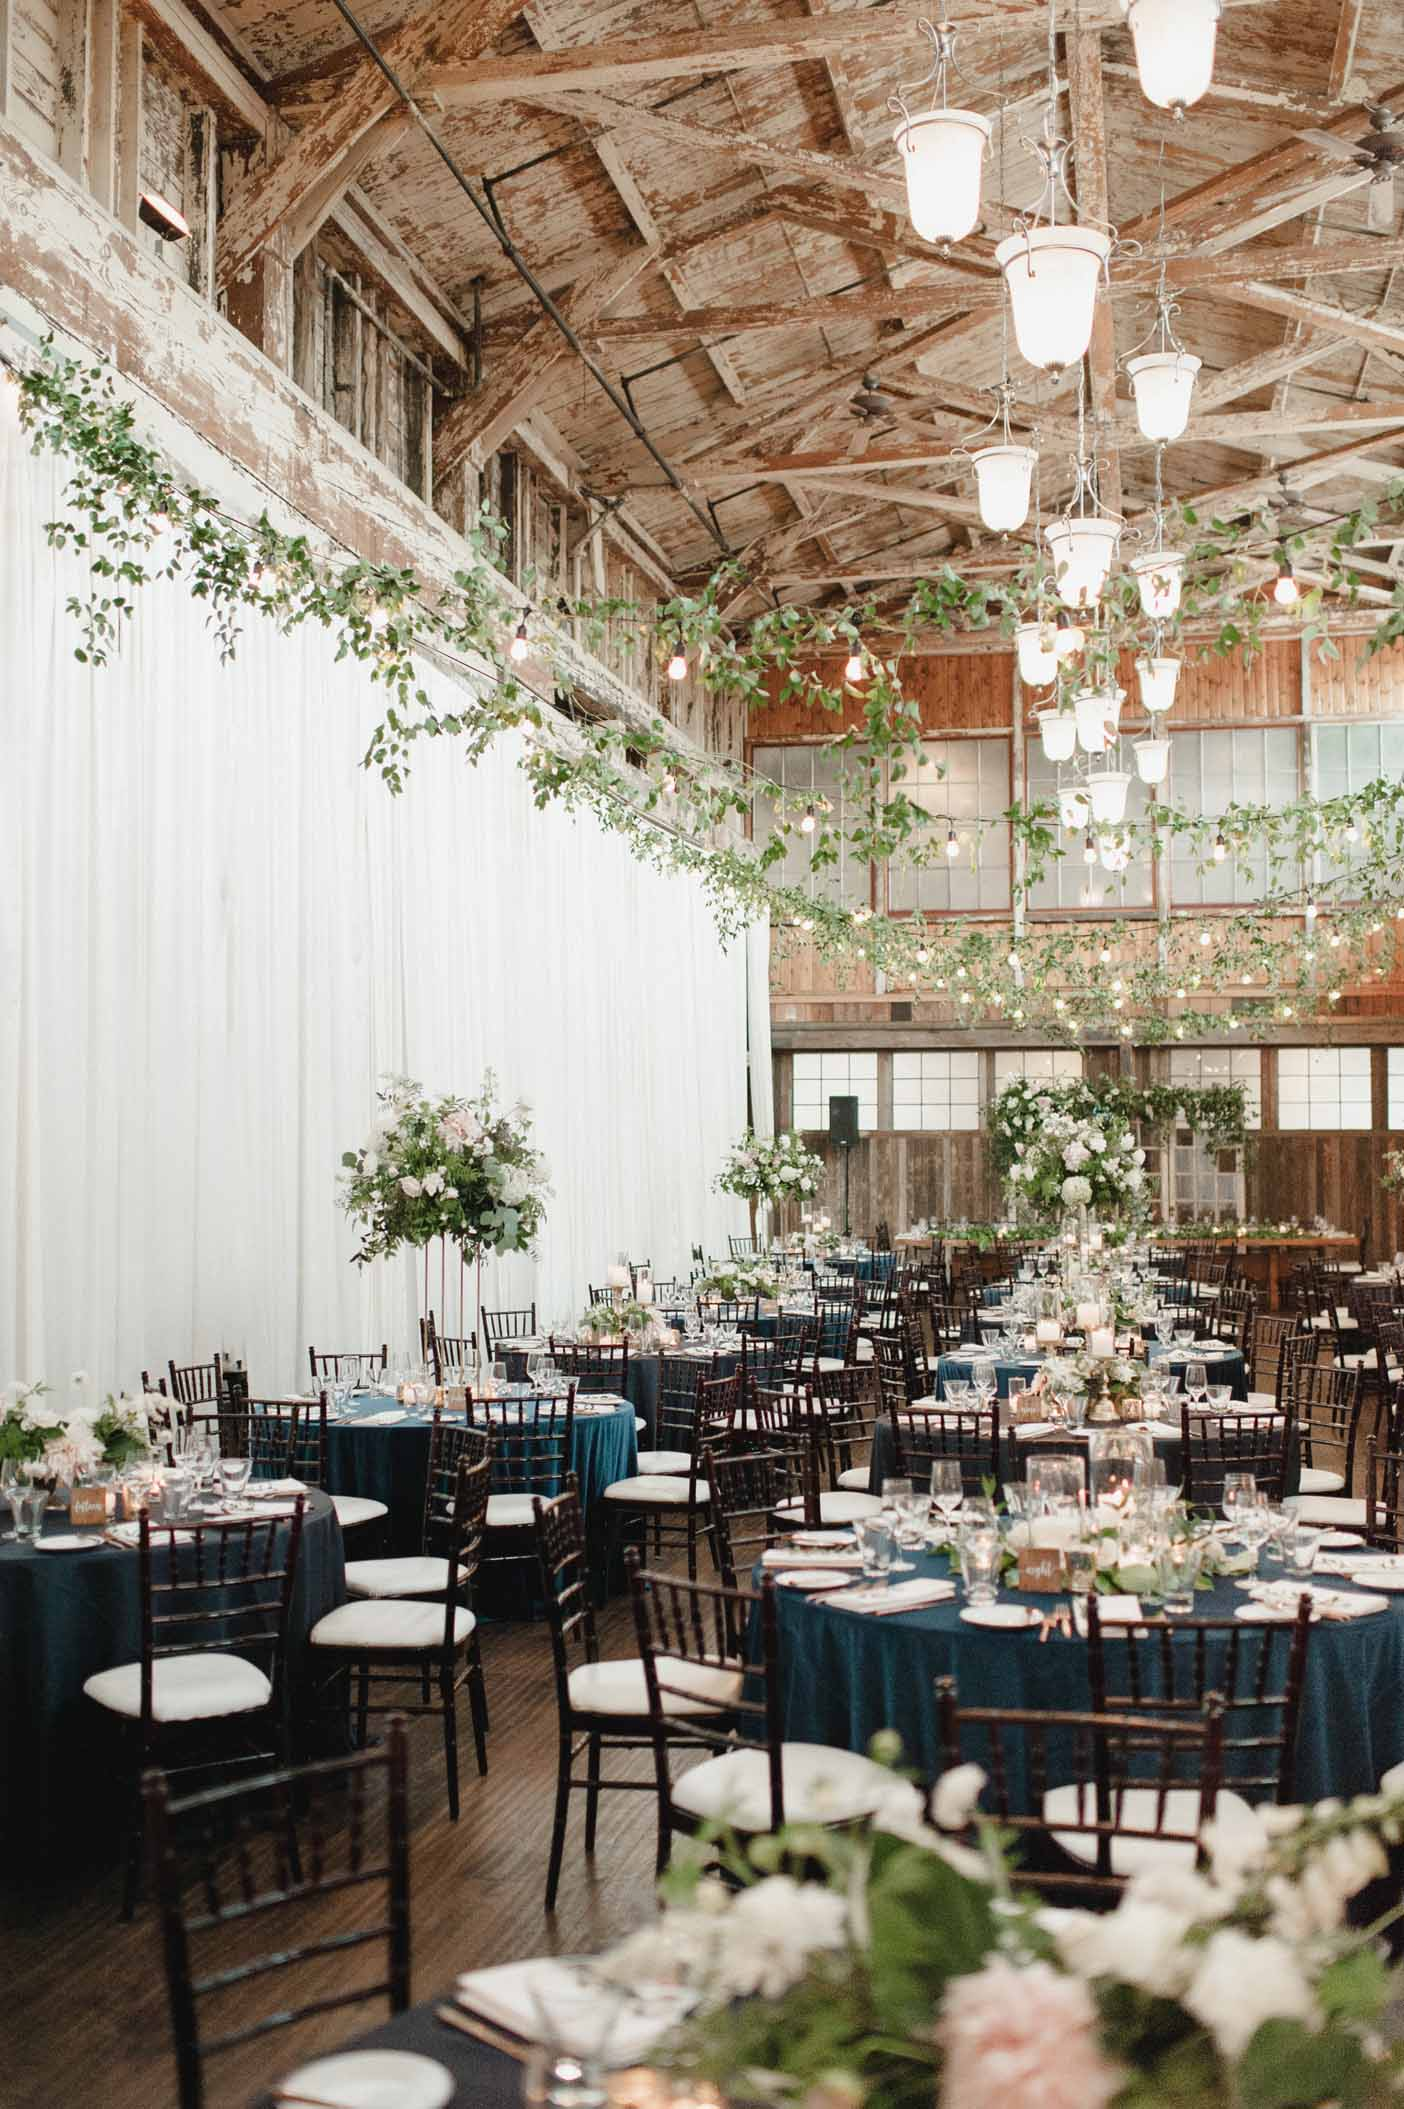 Wedding reception at Sodo Park with greenery in ceiling, blue linens, flower centerpieces in blush, ivory, and green - Flora Nova Design Seattle